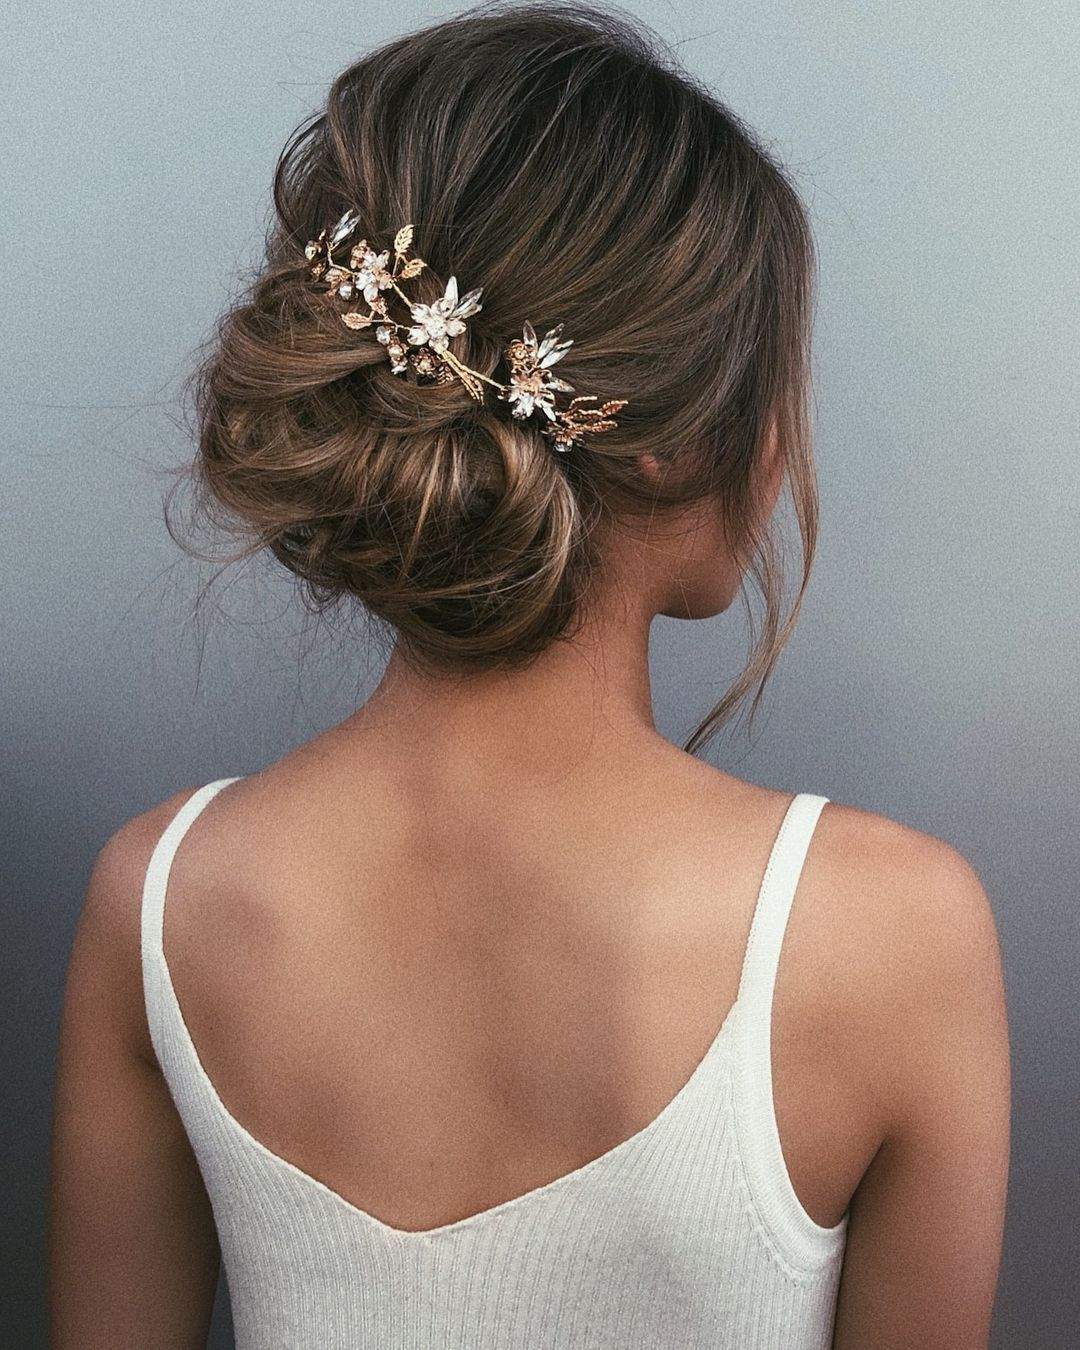 Textured wedding updo hairstyle messy updo wedding hairstyles